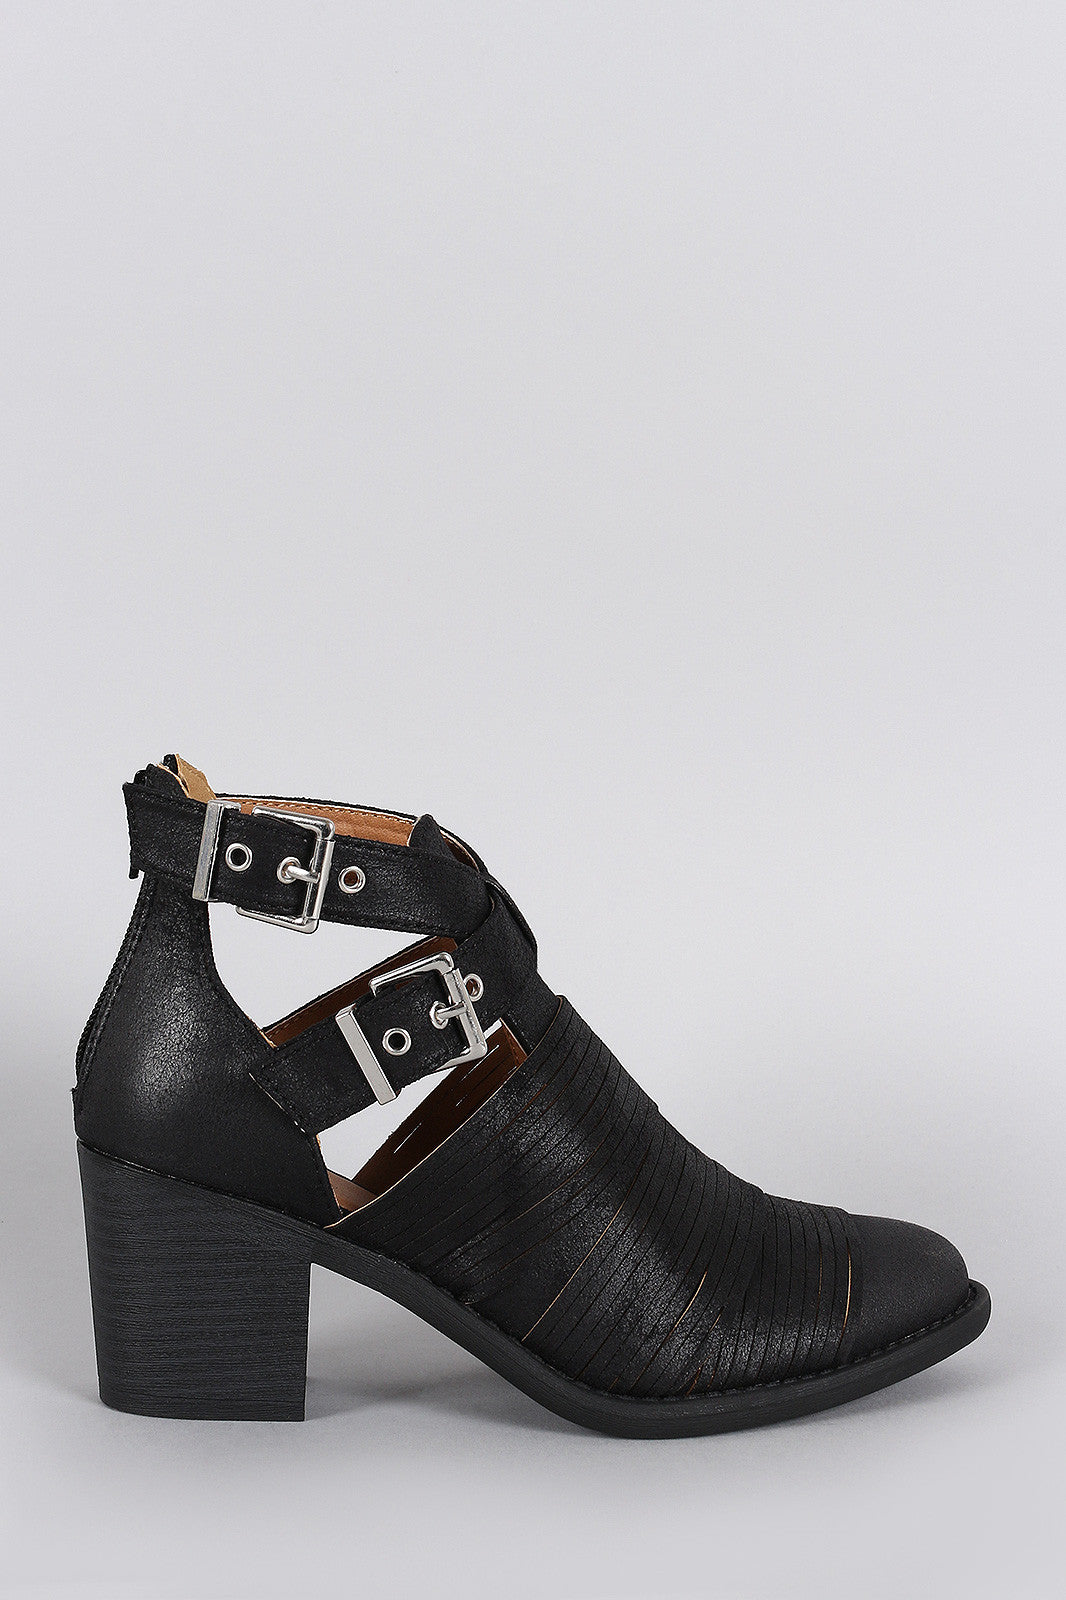 Qupid Slashed Crisscross Buckled Strap Chunky Heeled Ankle Boots - Thick 'N' Curvy Shop - 4